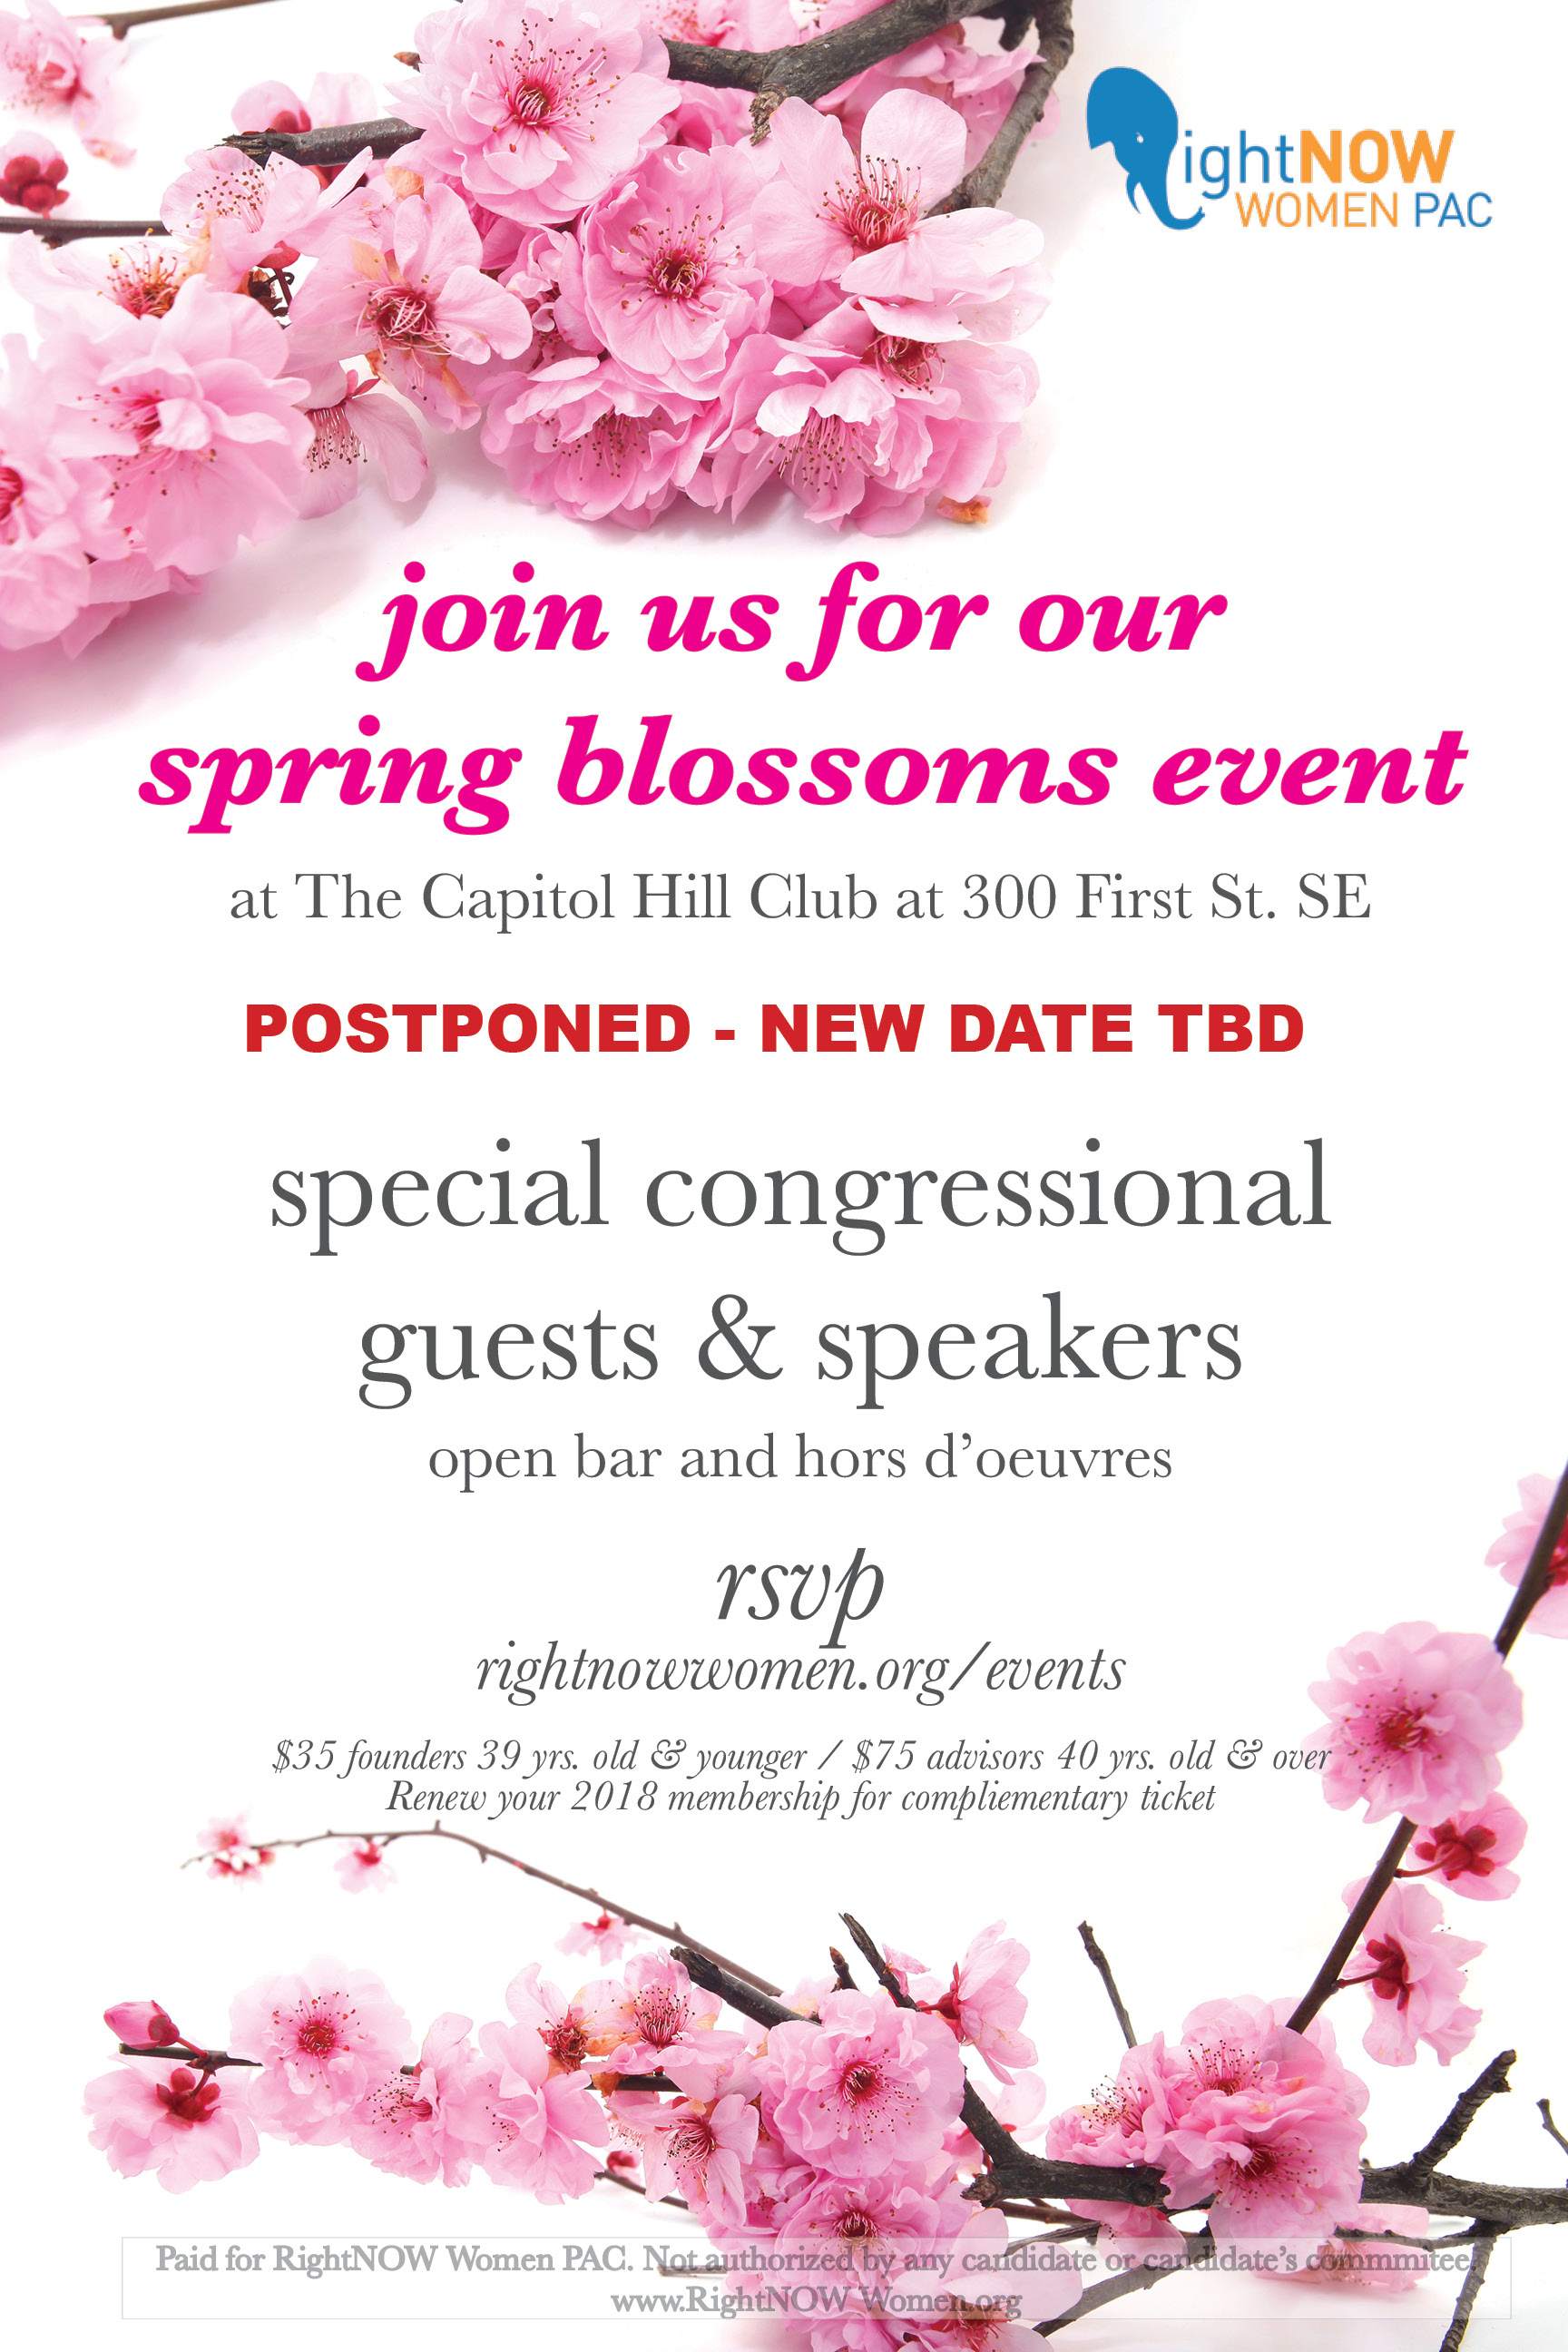 RightNOW_Women_PAC_March_Spring_2018_POSTPONED.jpg